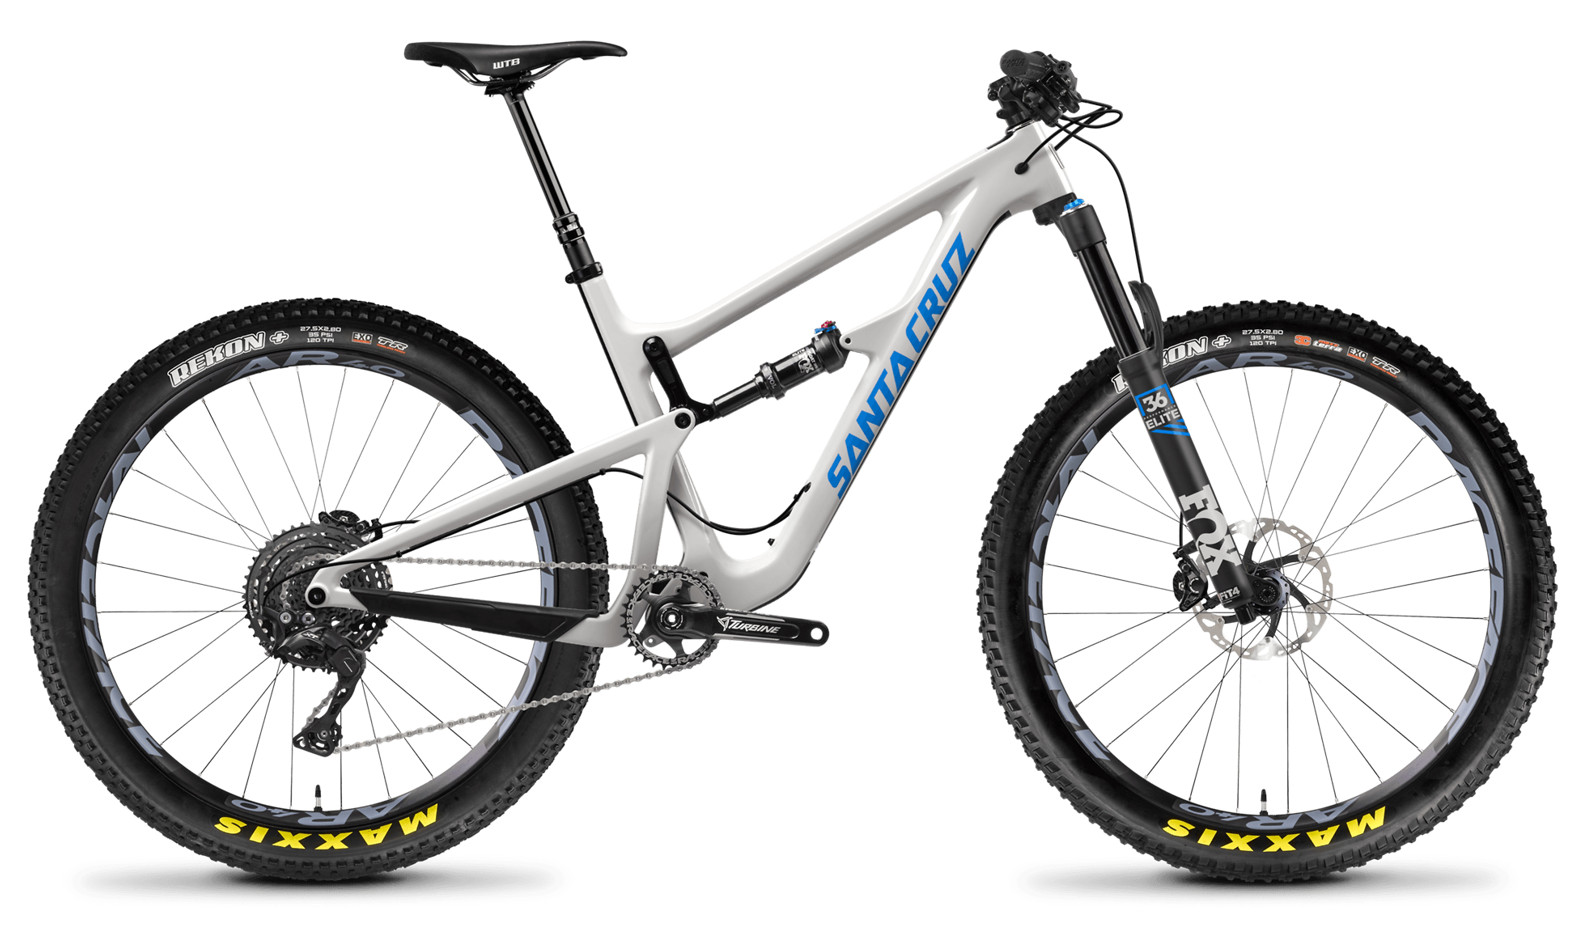 Santa Cruz Hightower Carbon C XE 27.5 PLUS Gloss Cannery Gry and Blue